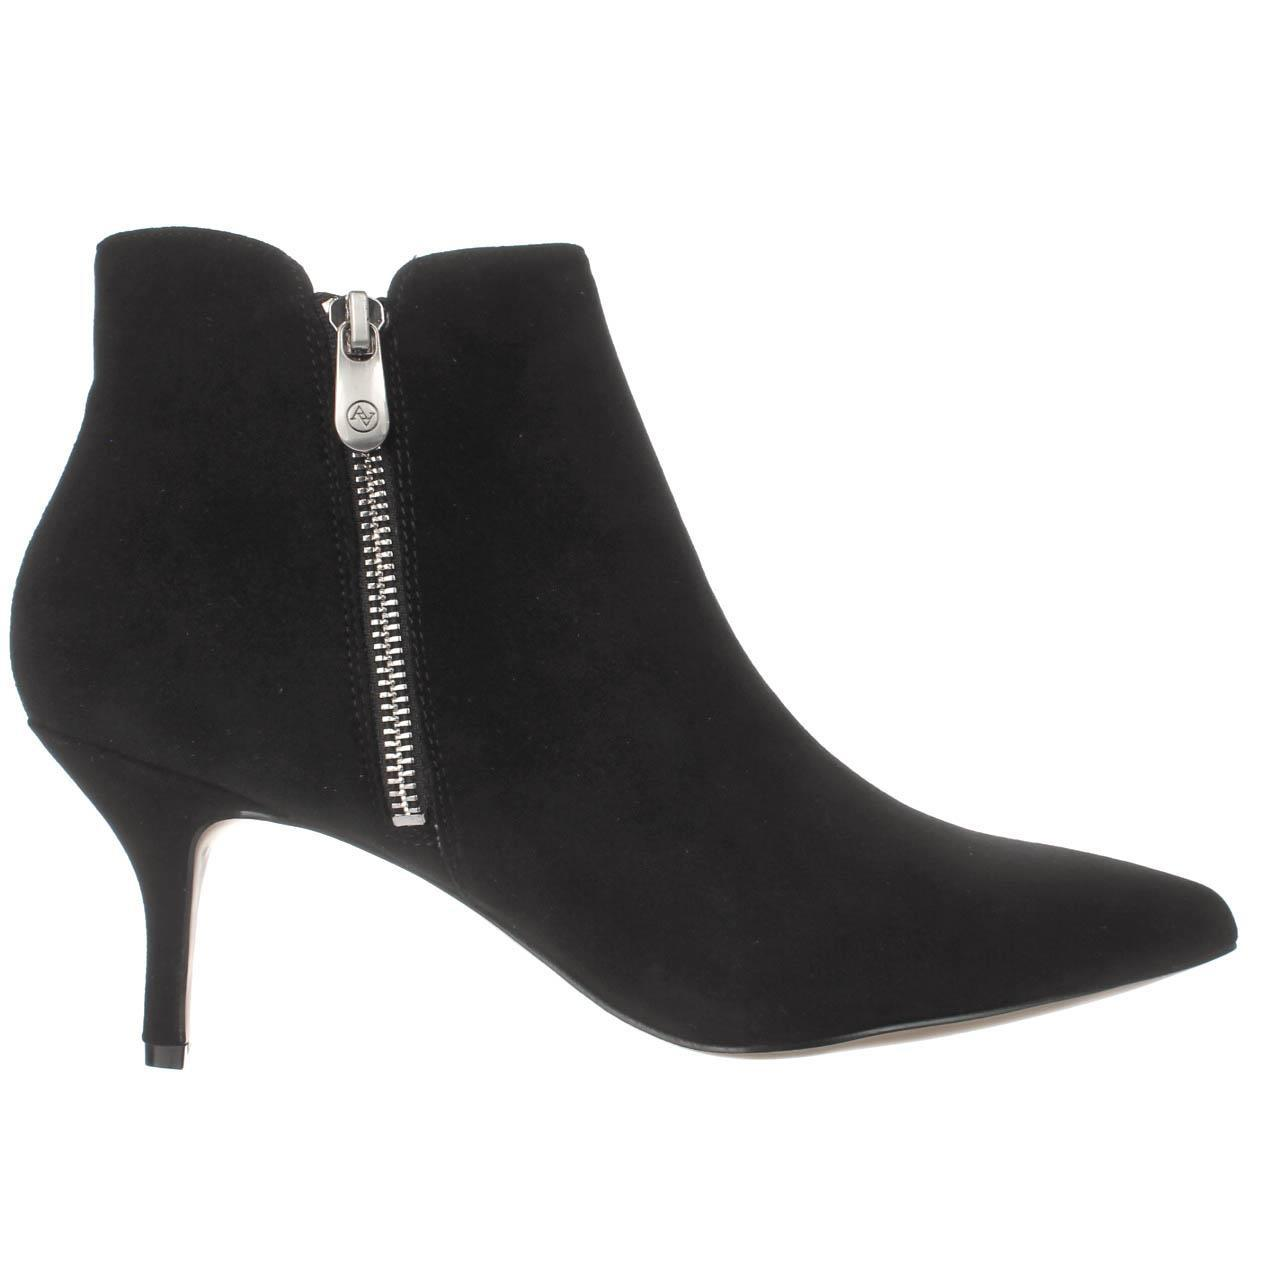 d0e450a2cf1 Lyst - Adrienne Vittadini Senji Double Zip Ankle Booties in Black